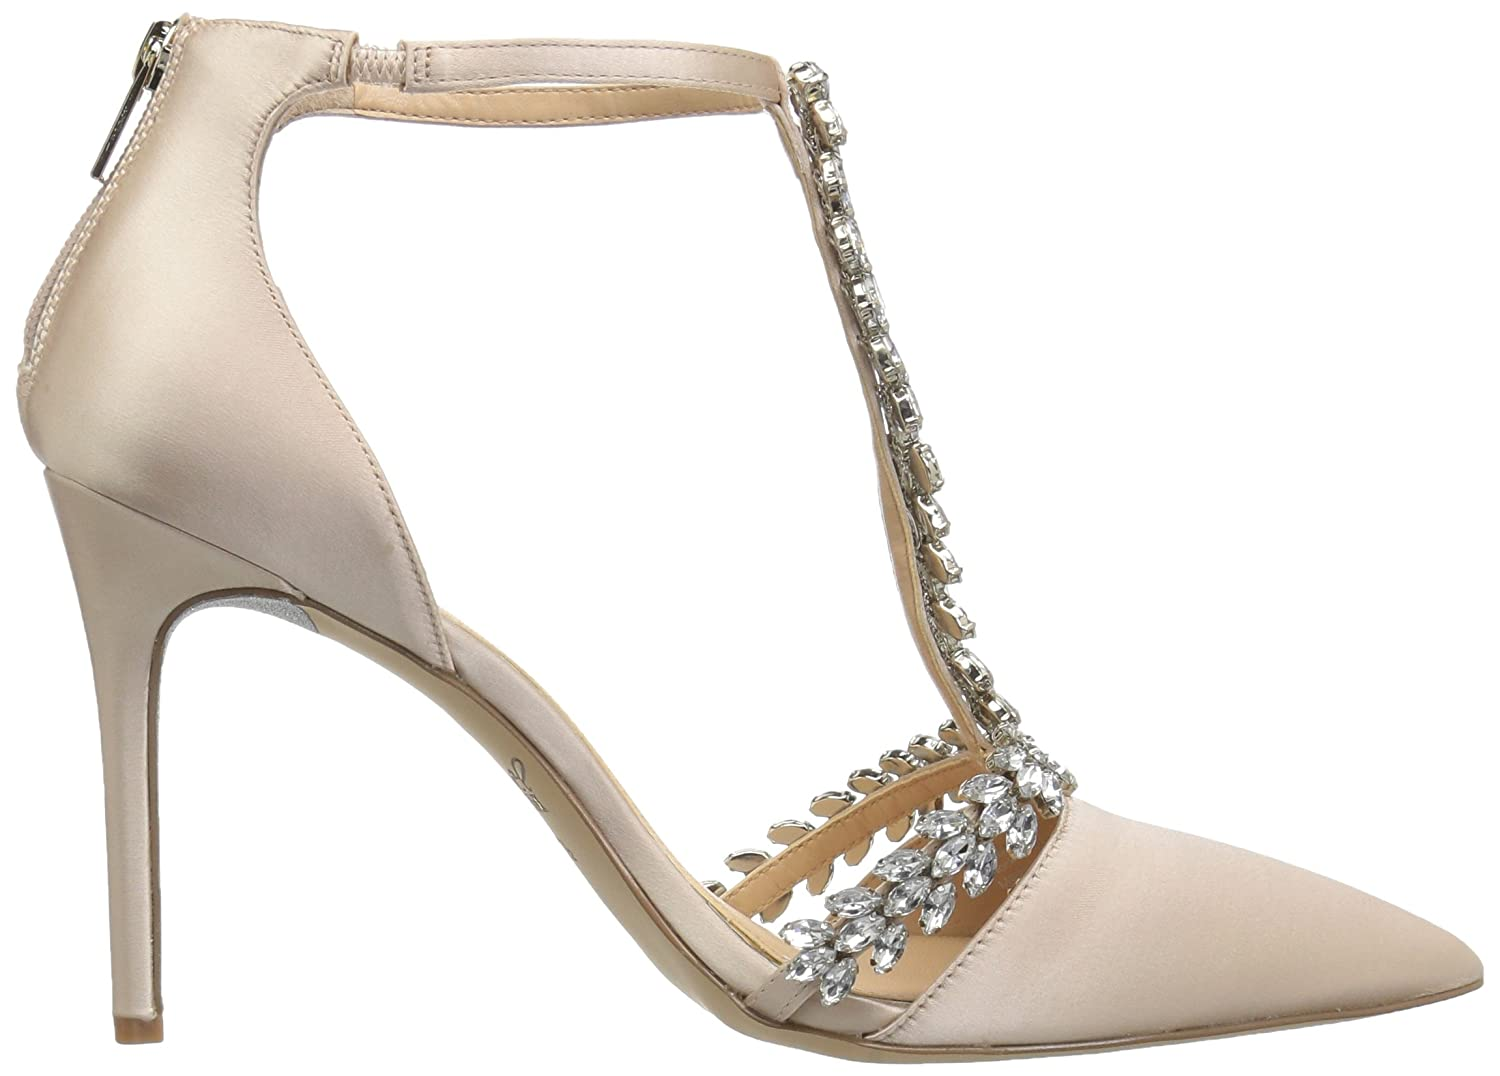 Badgley Mischka Jewel Women's Meena Pump B0781YXFCP 11 B(M) US|Champagne Satin